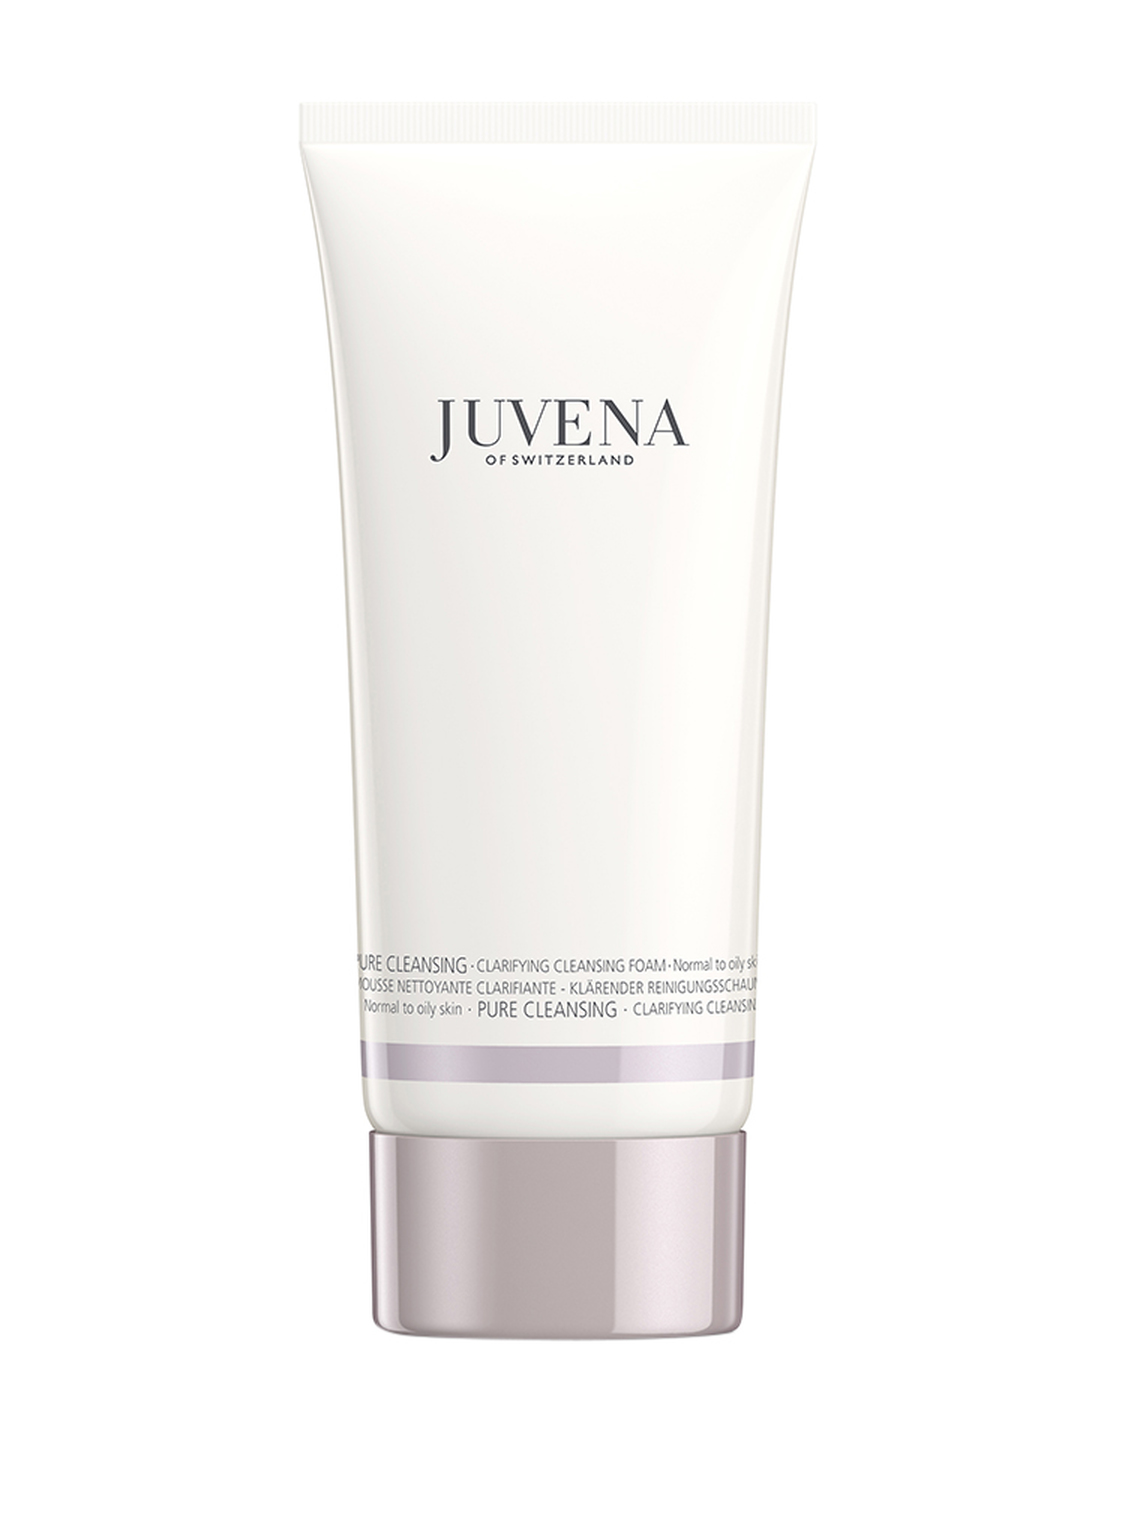 Image of Juvena Pure Cleansing Clarifying Cleansing Foam 200 ml